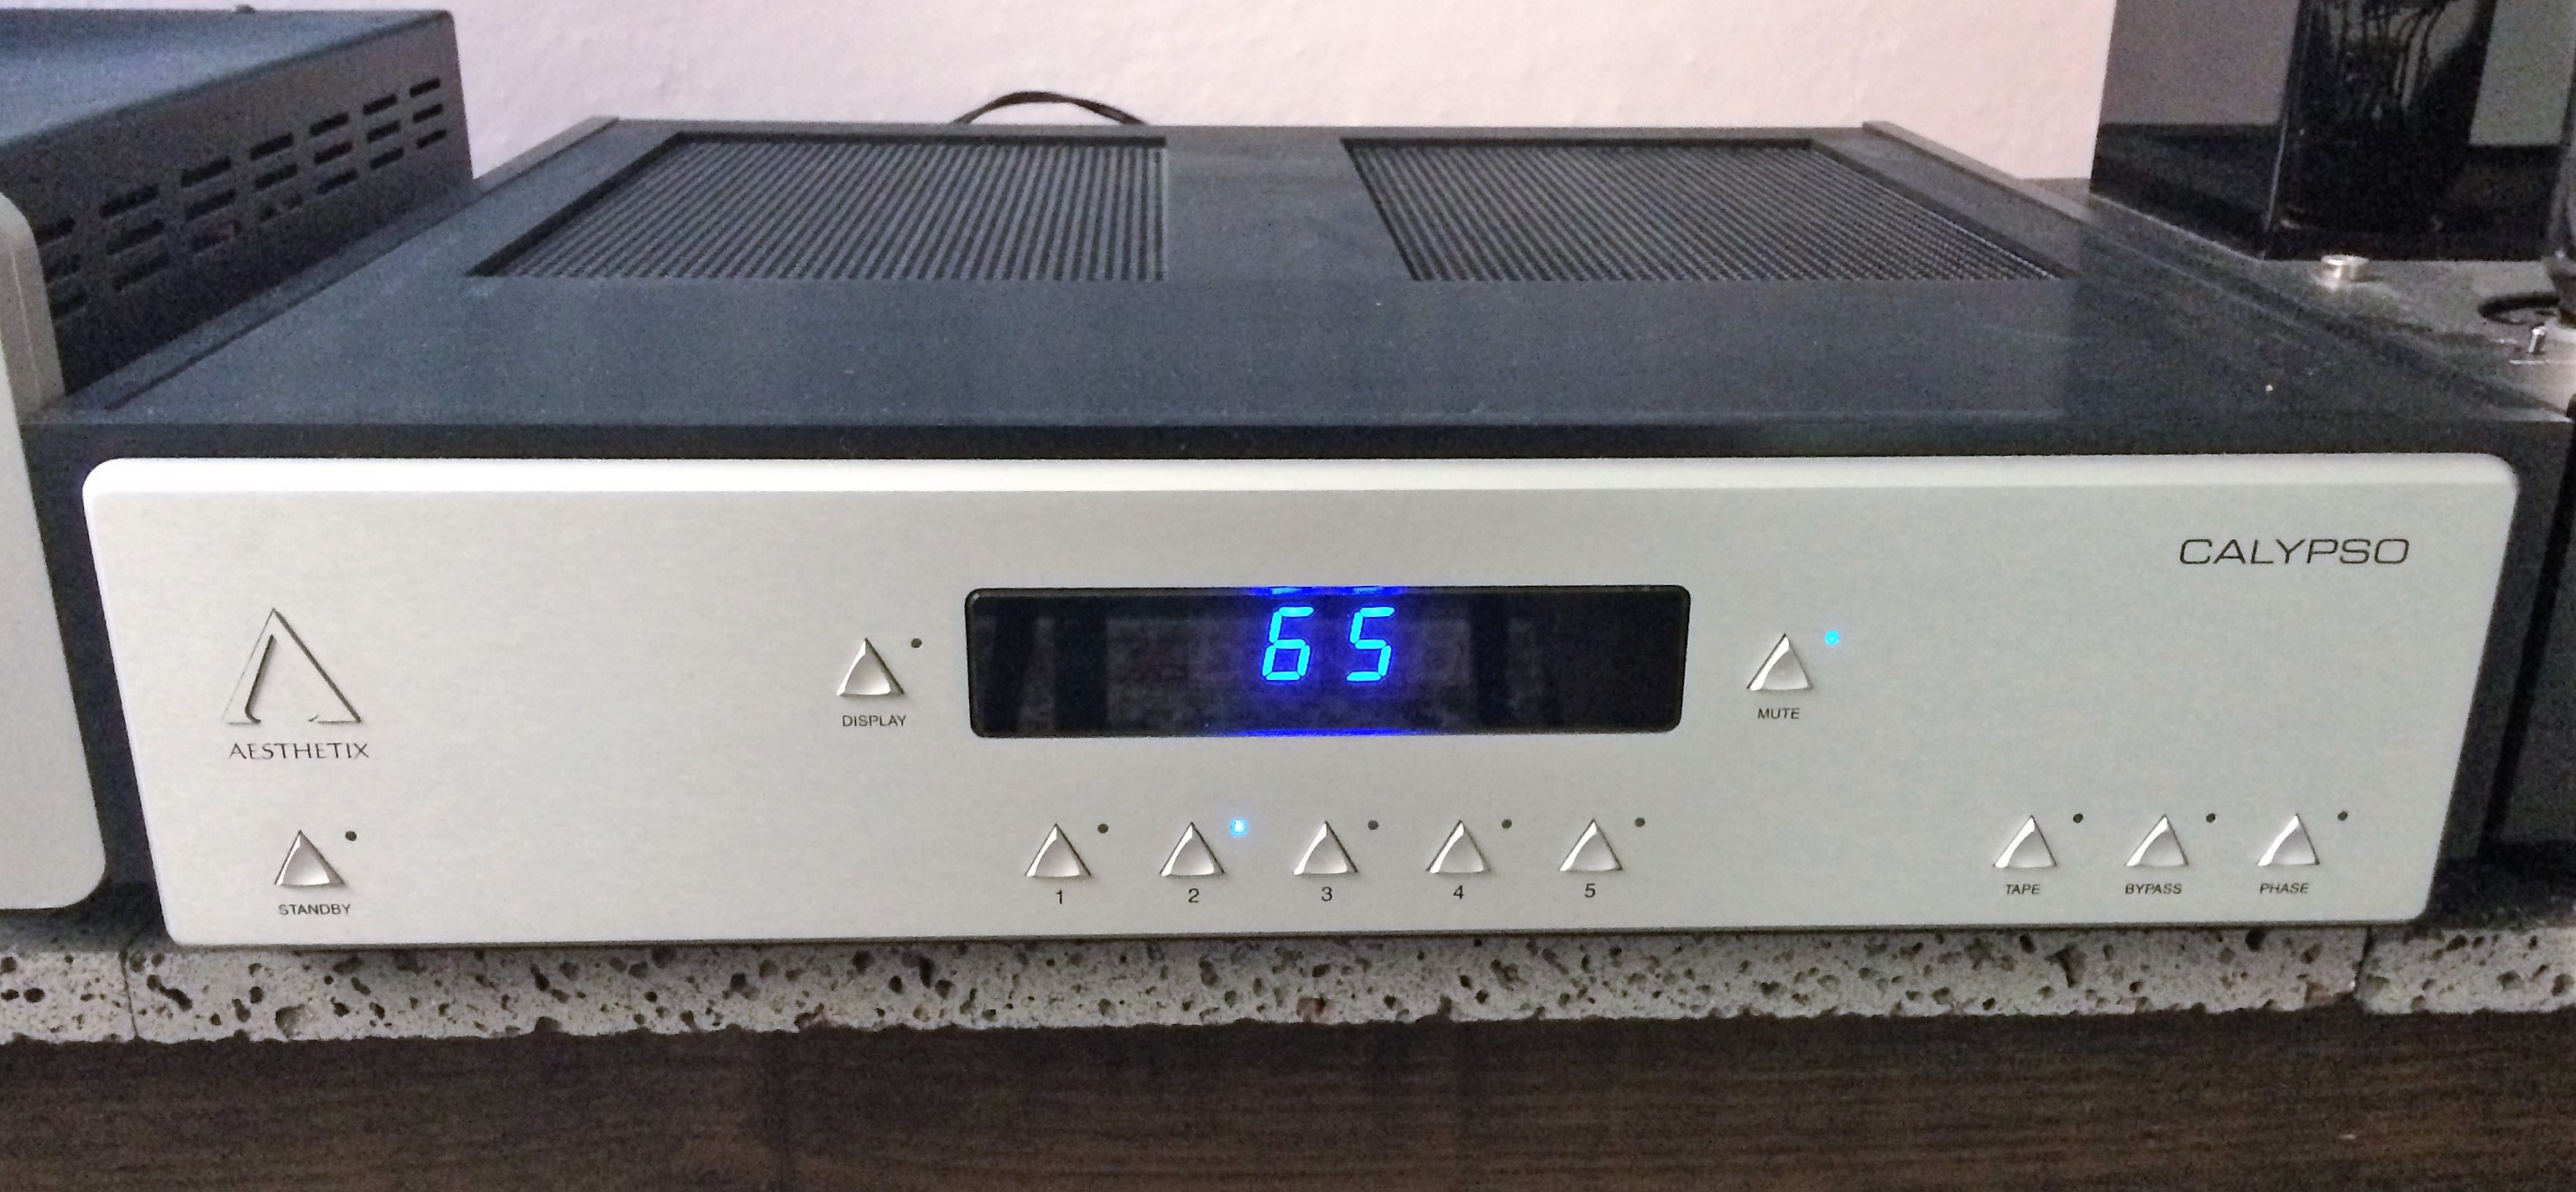 Sold Aesthetix Calypso Tube Linestage Pre Amp Classifieds Audio Meixing Mingdabewitchbada Amplifiers Cd Playerpower Preamp Img 2392thumb950ab5ab3145e57ee94085225e431072